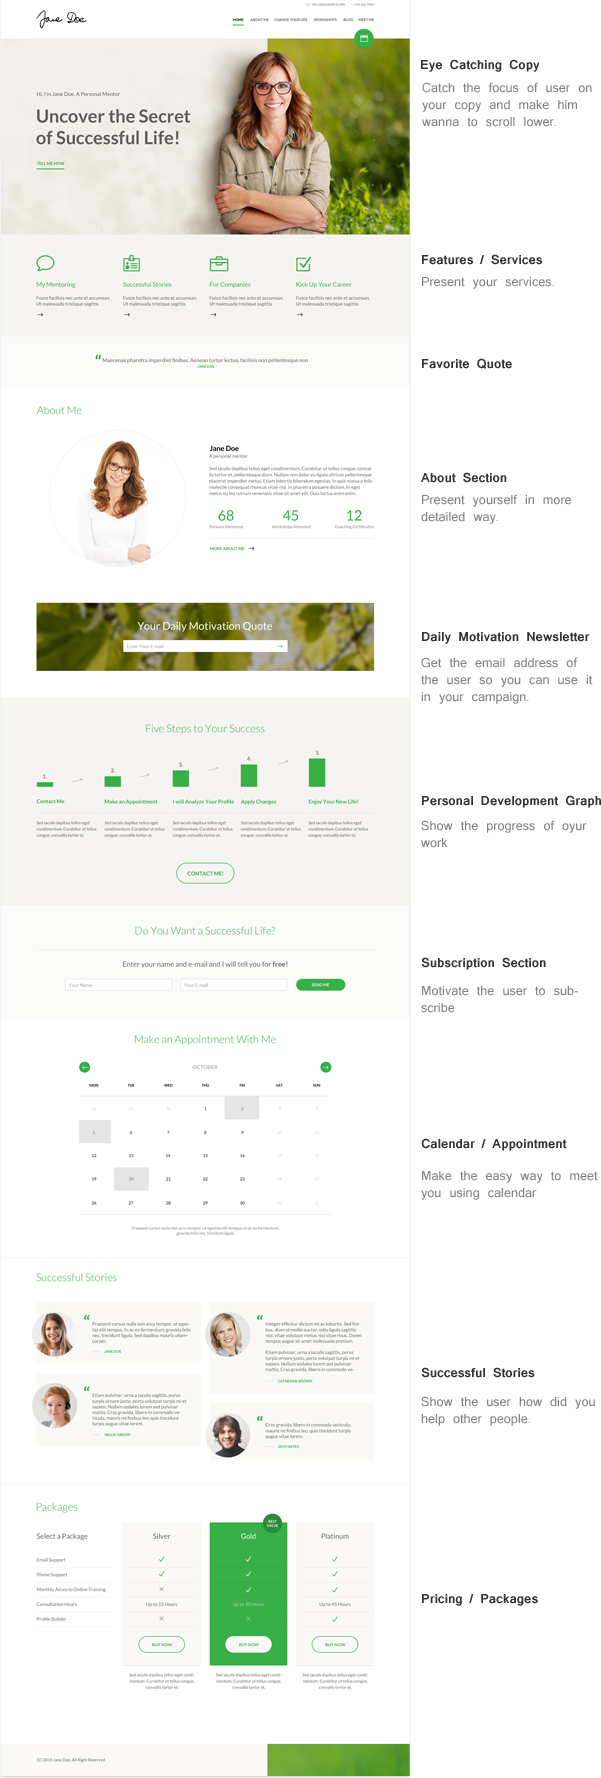 Mentor - Personal Development Coach HTML Template - 2